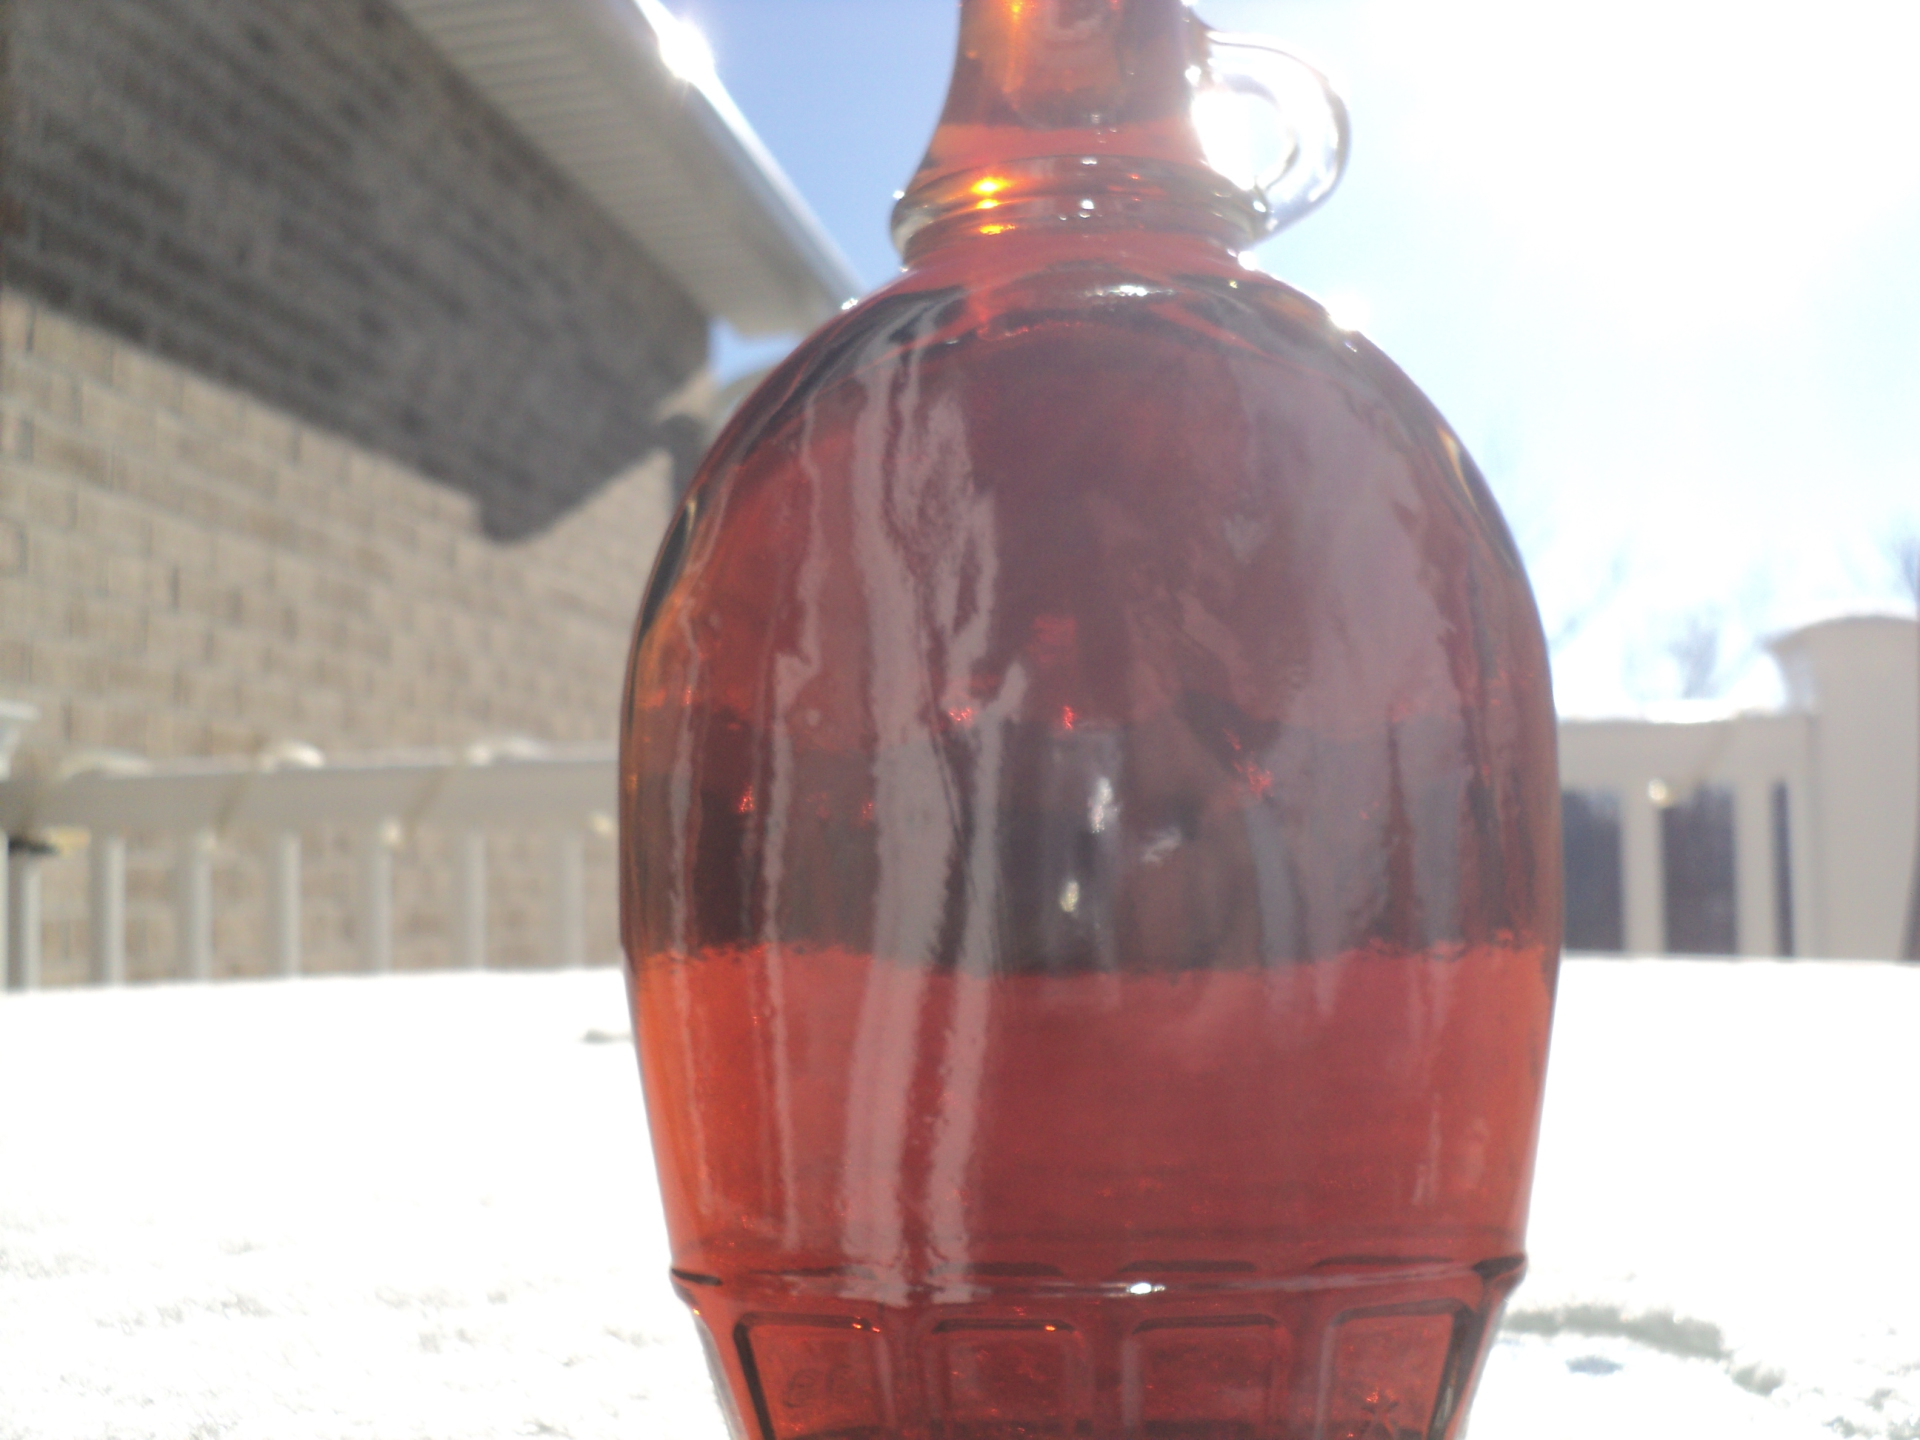 12 Ounce Pure WV Maple Syrup in Glass Flask